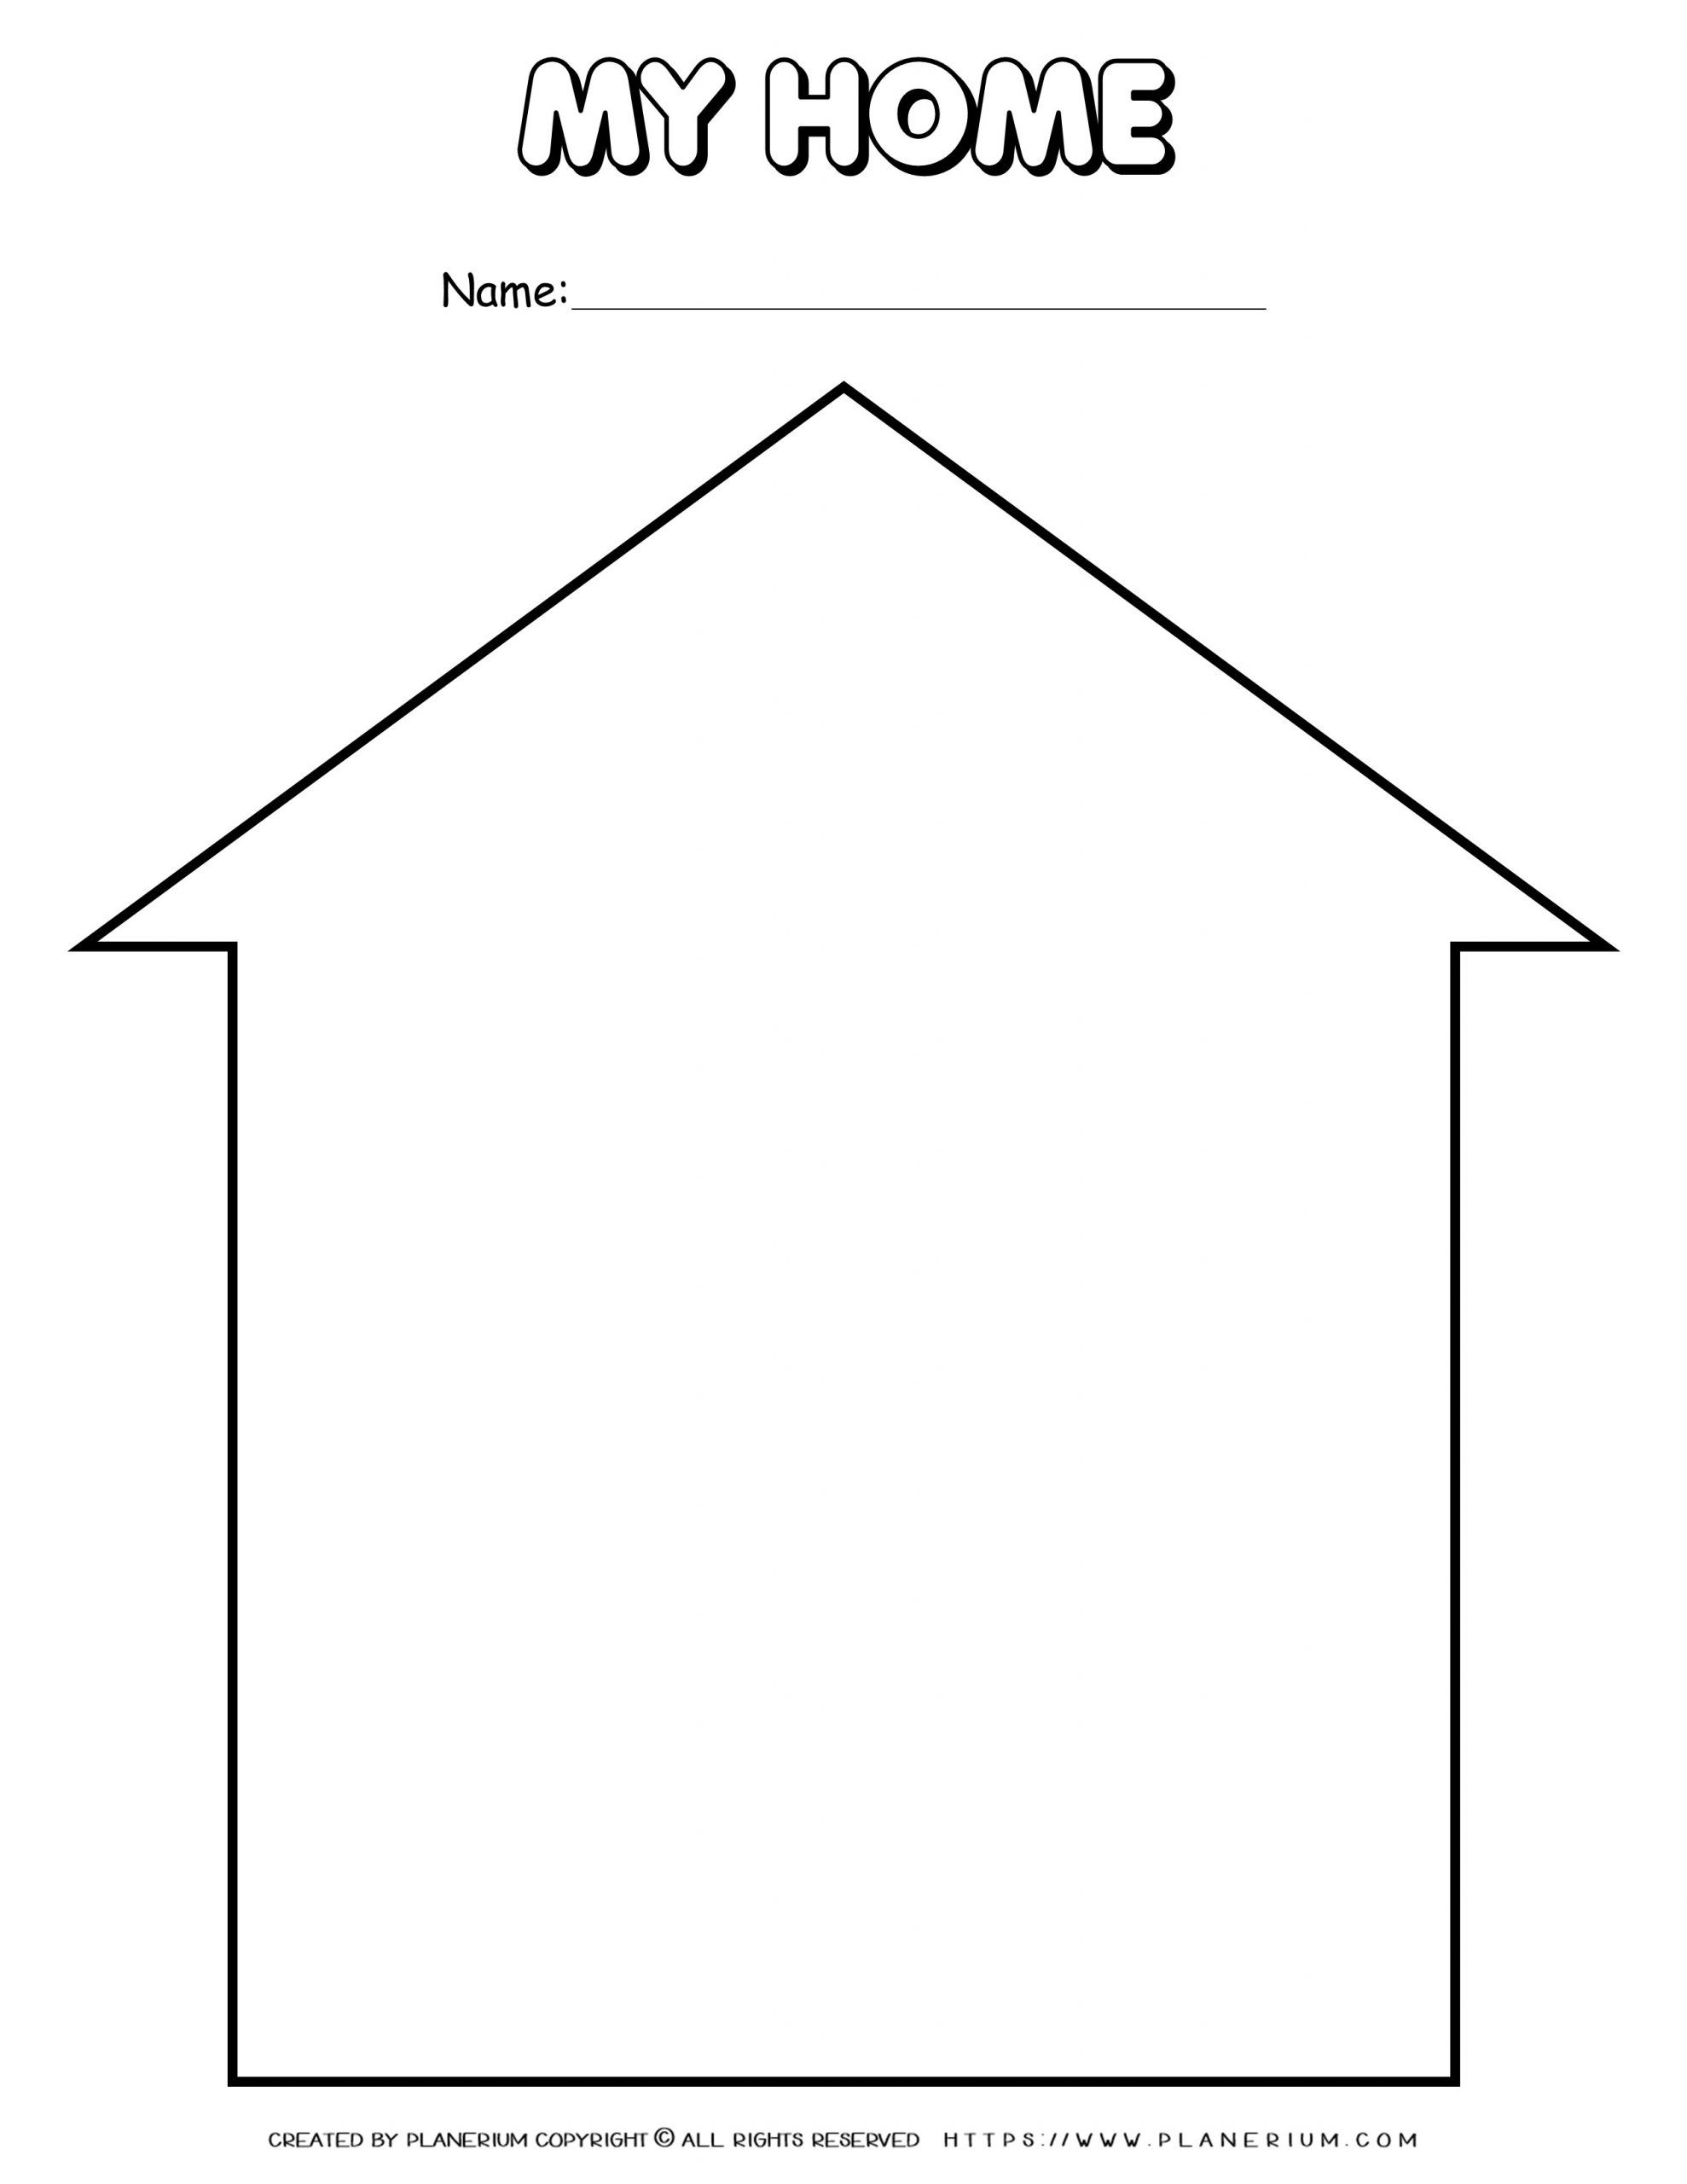 My Home Template In